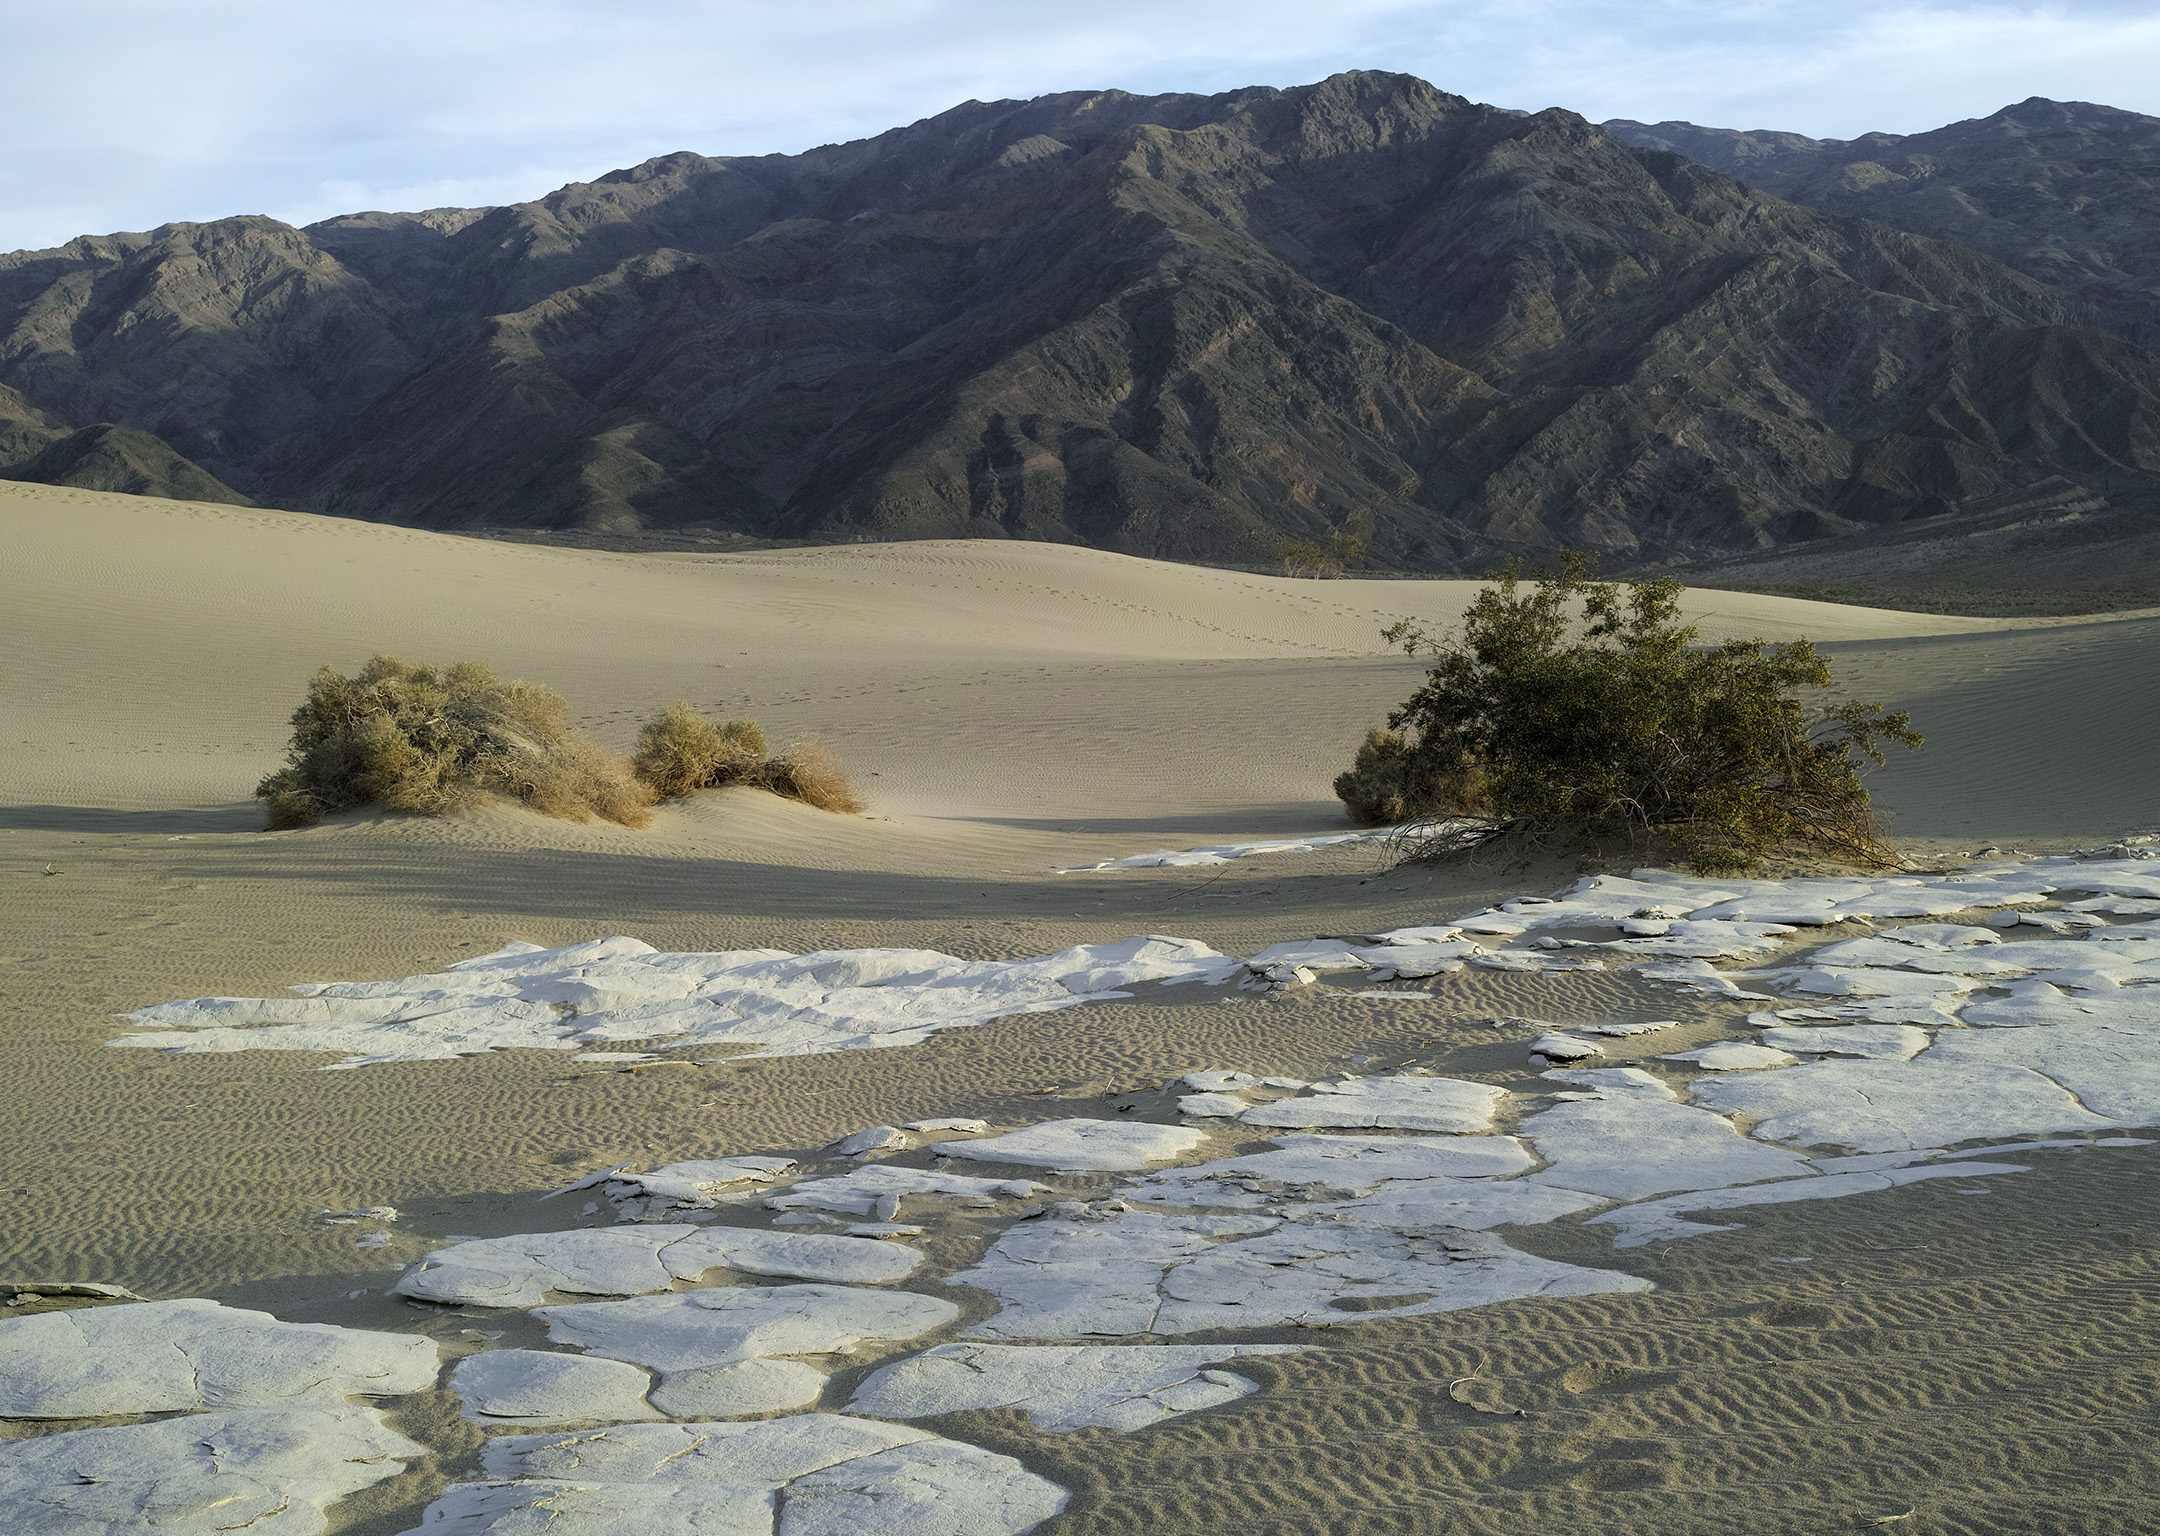 DVNP Mesquite Dunes and Panamint Mountains by bensonga in bensonga